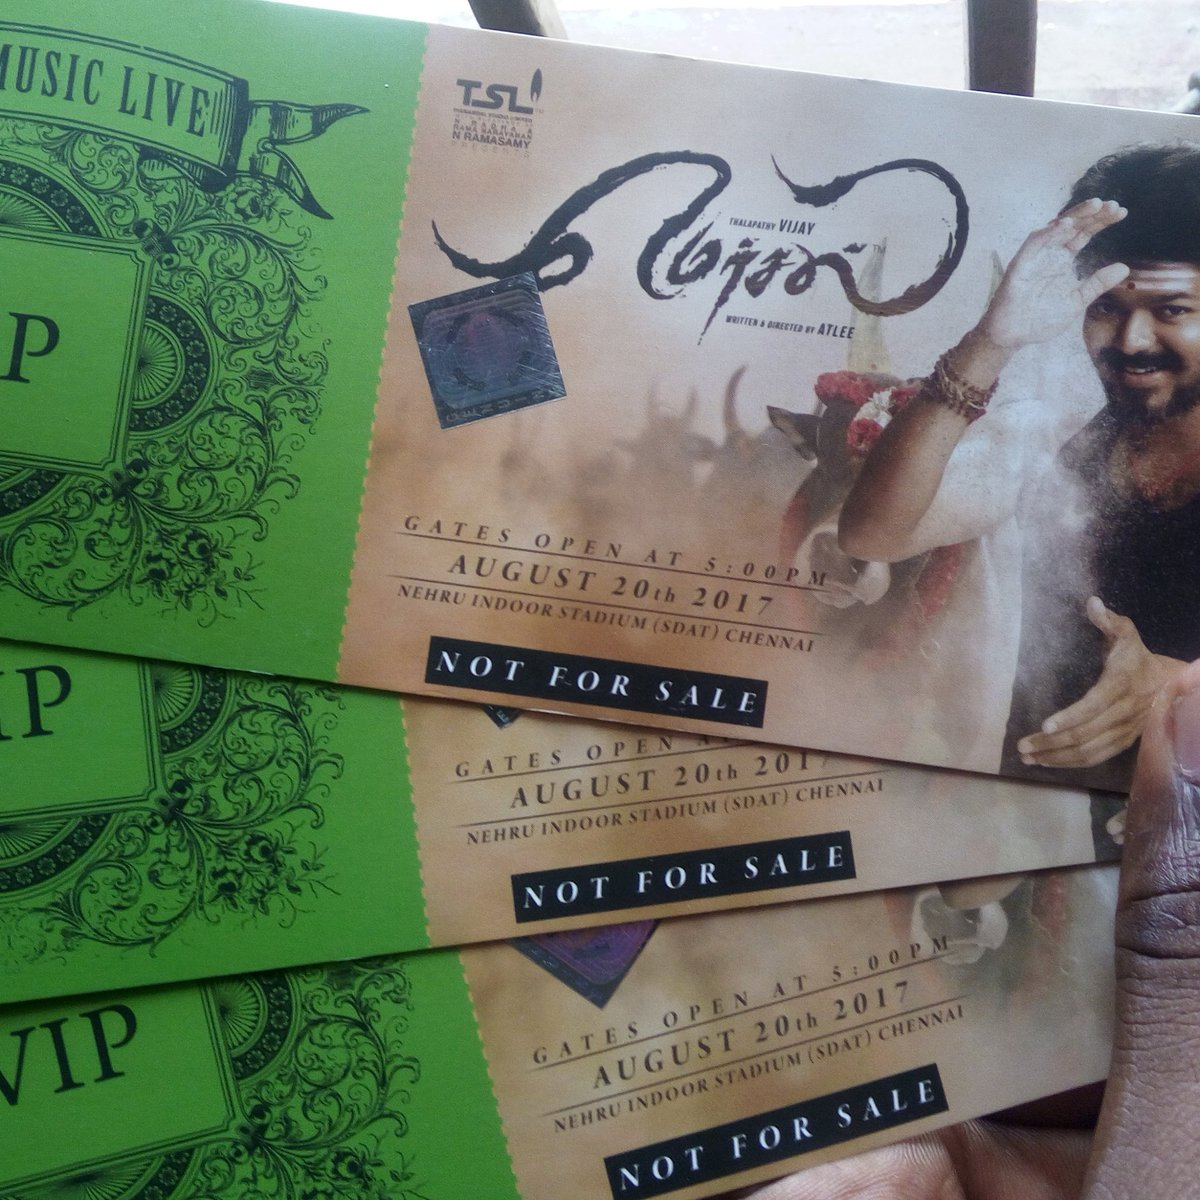 Can&#39;t better than this, got #MERSAL  Audio Launch #VIP Passes   #Thalapathy25 #ARR25 #TSL100  #MersalMusicLive    HISTORIC MERSAL AUDIO<br>http://pic.twitter.com/v2jXKMTiBN